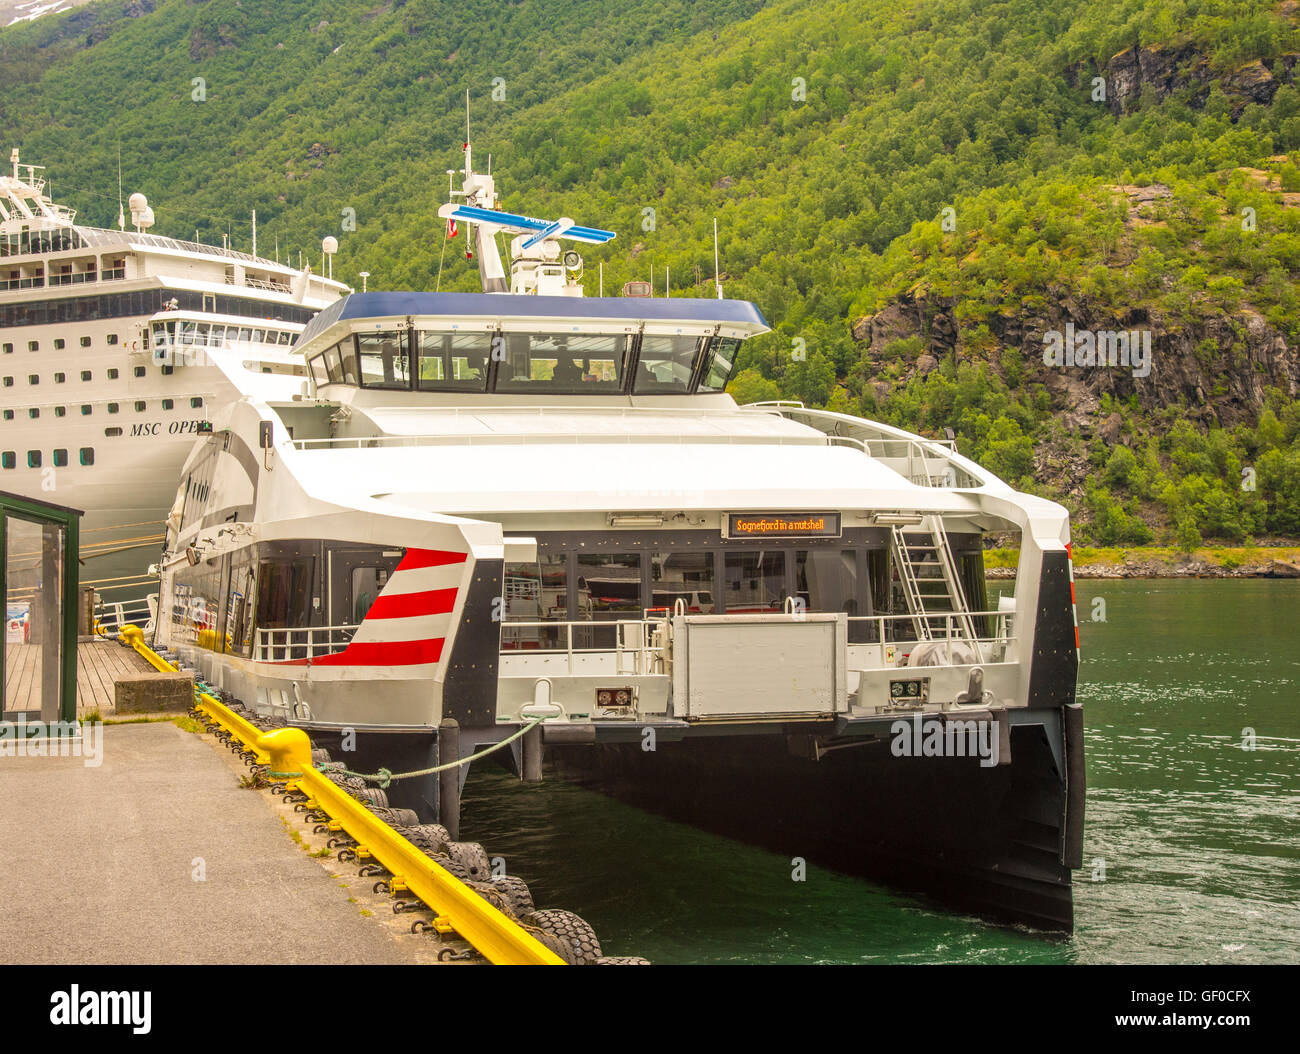 Songnefjord Ferry Express boat docked at Flam Harbour, Flam, Norway, Scandanavia, Europen - Stock Image